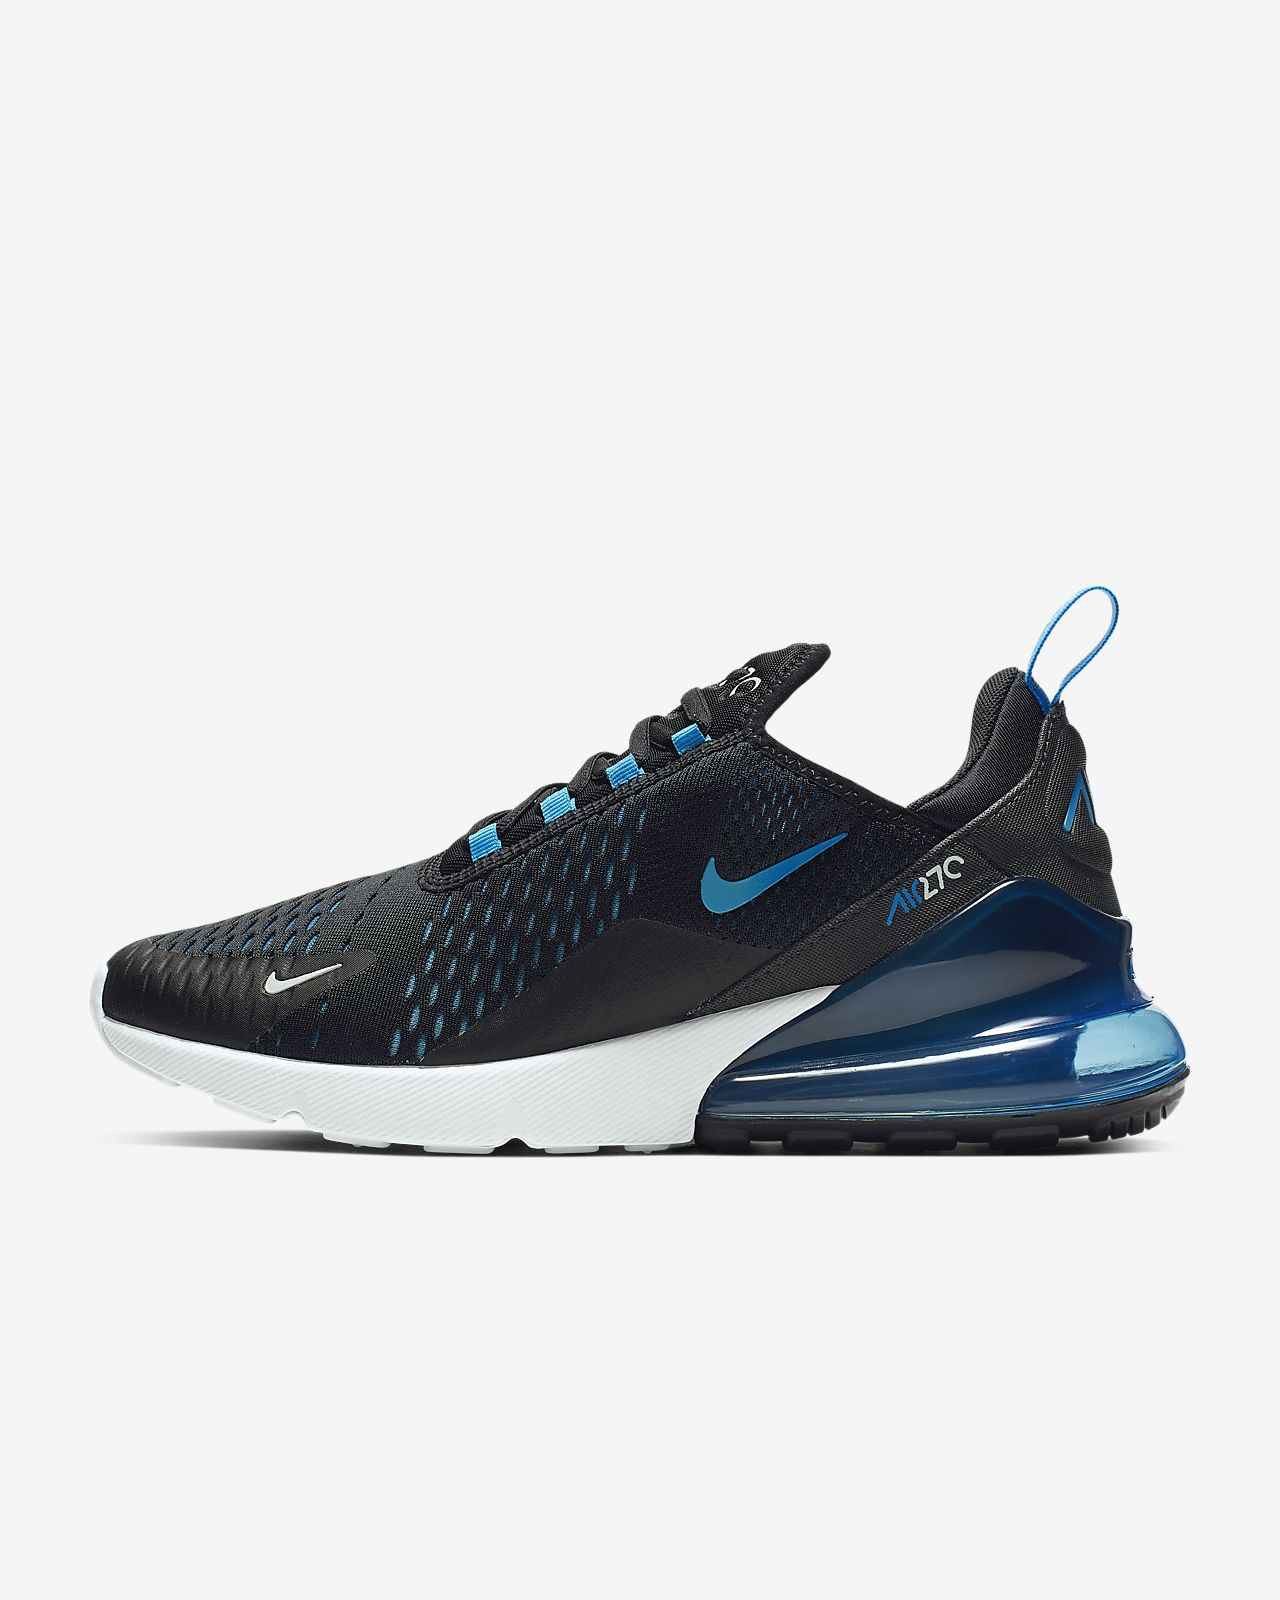 a9968c064d Nike Air Max 270 Men's Shoe. Nike.com